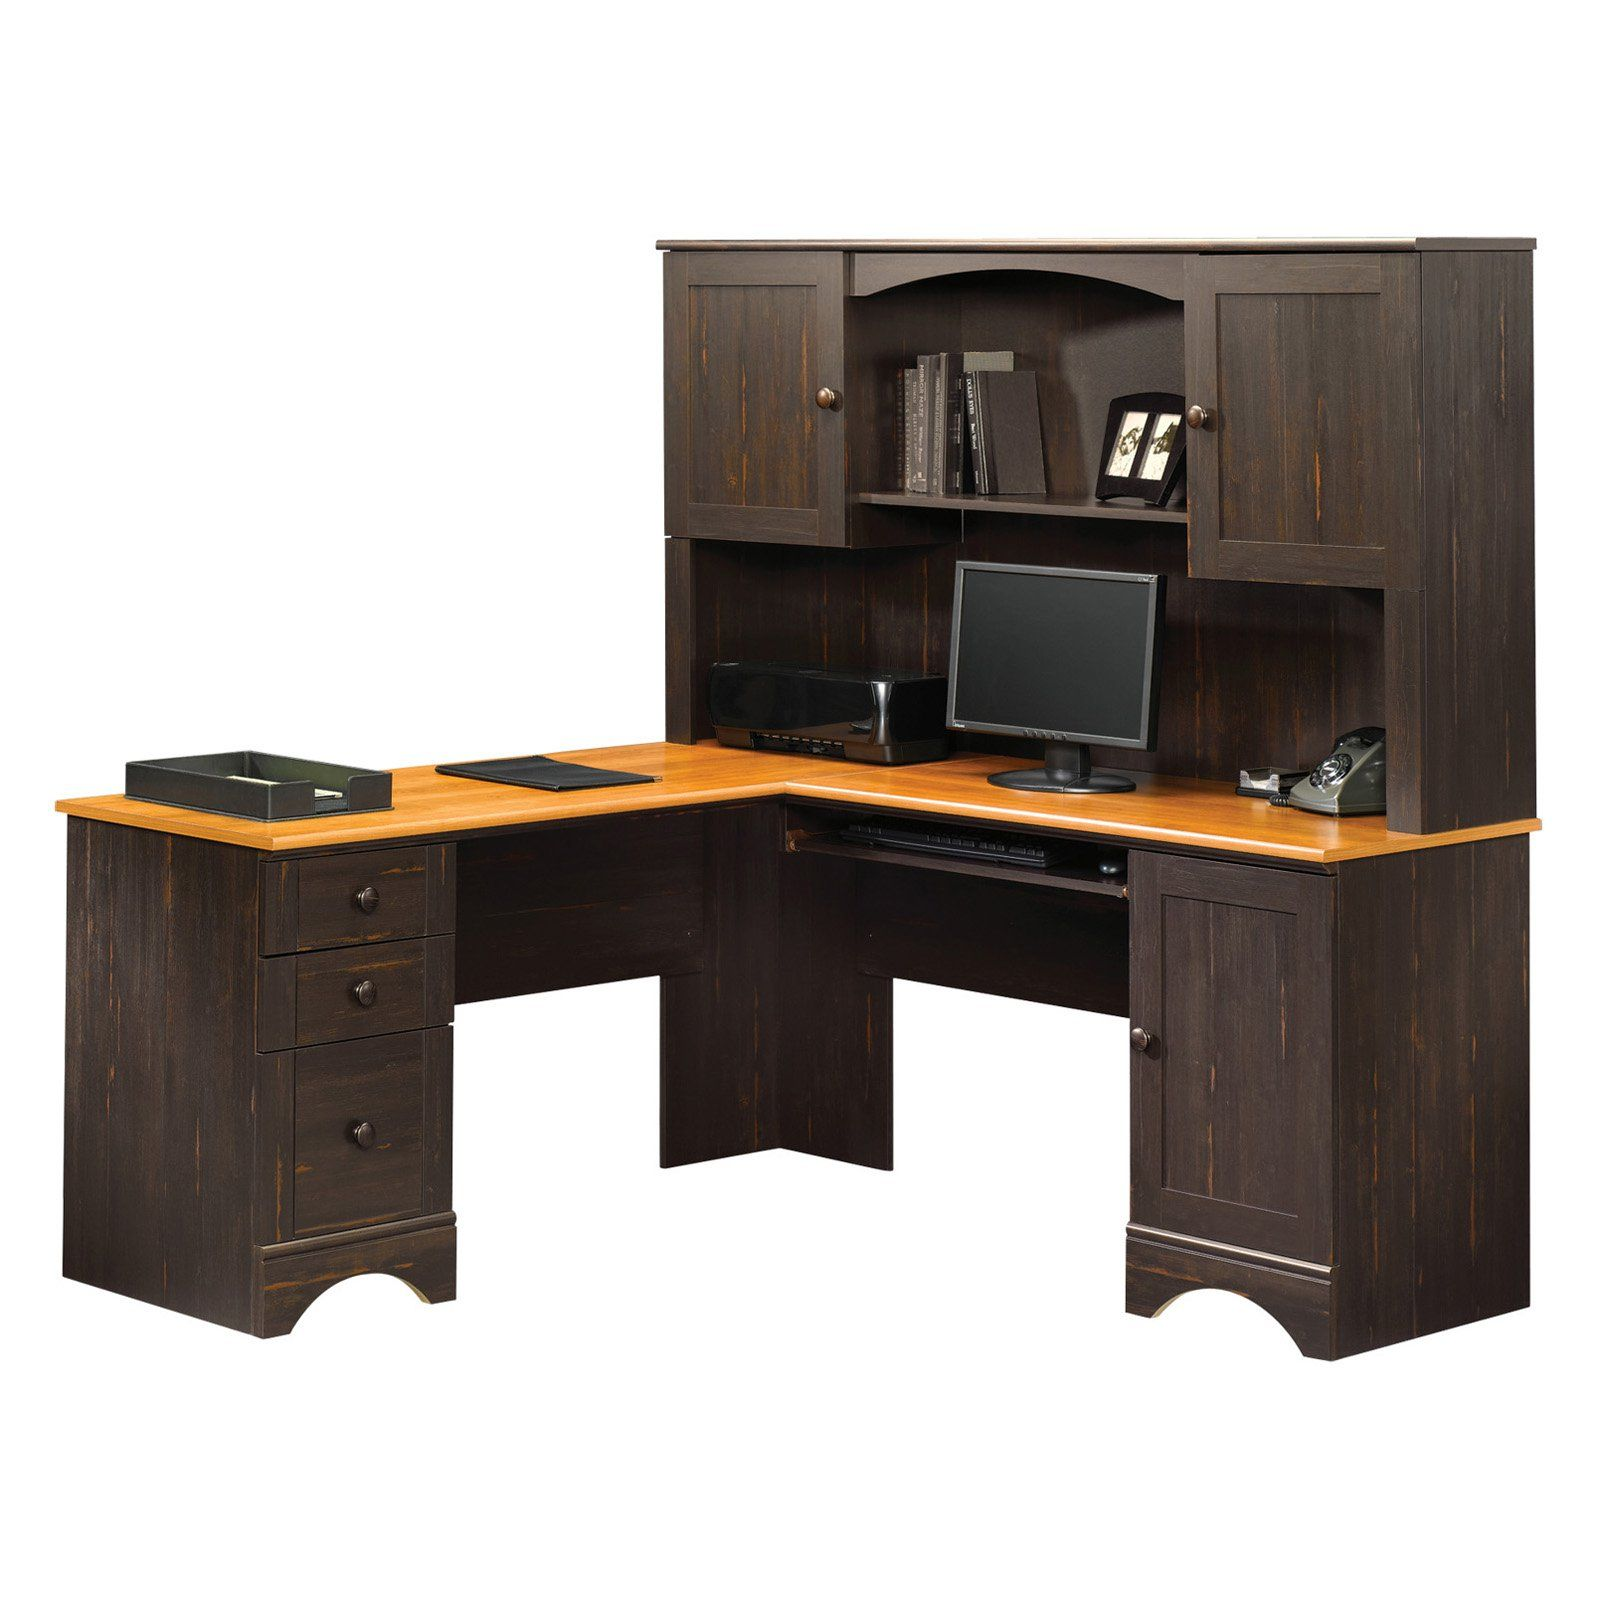 Sauder Harbor View Corner Computer Desk With Hutch   Antiqued Paint | From  Hayneedle.com